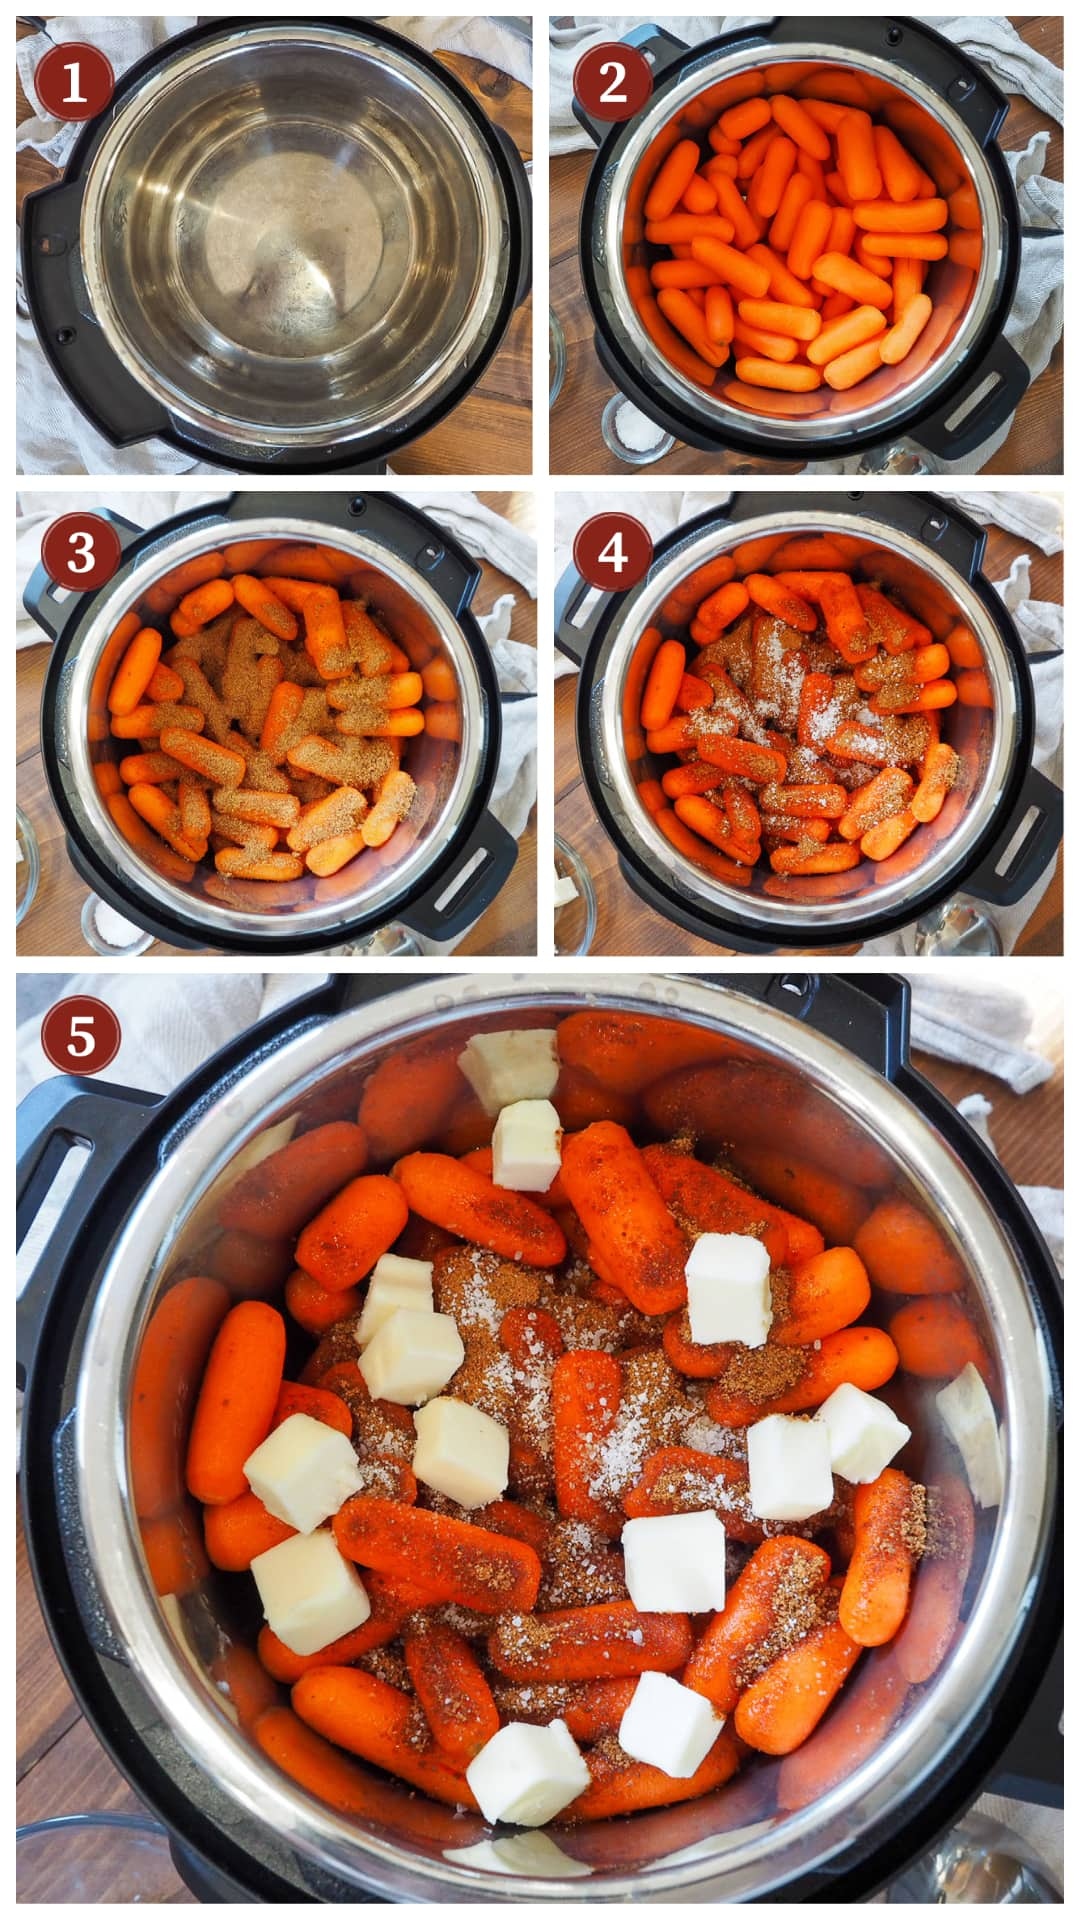 A collage of images showing how to make glazed carrots in an instant pot, steps 1 - 5.